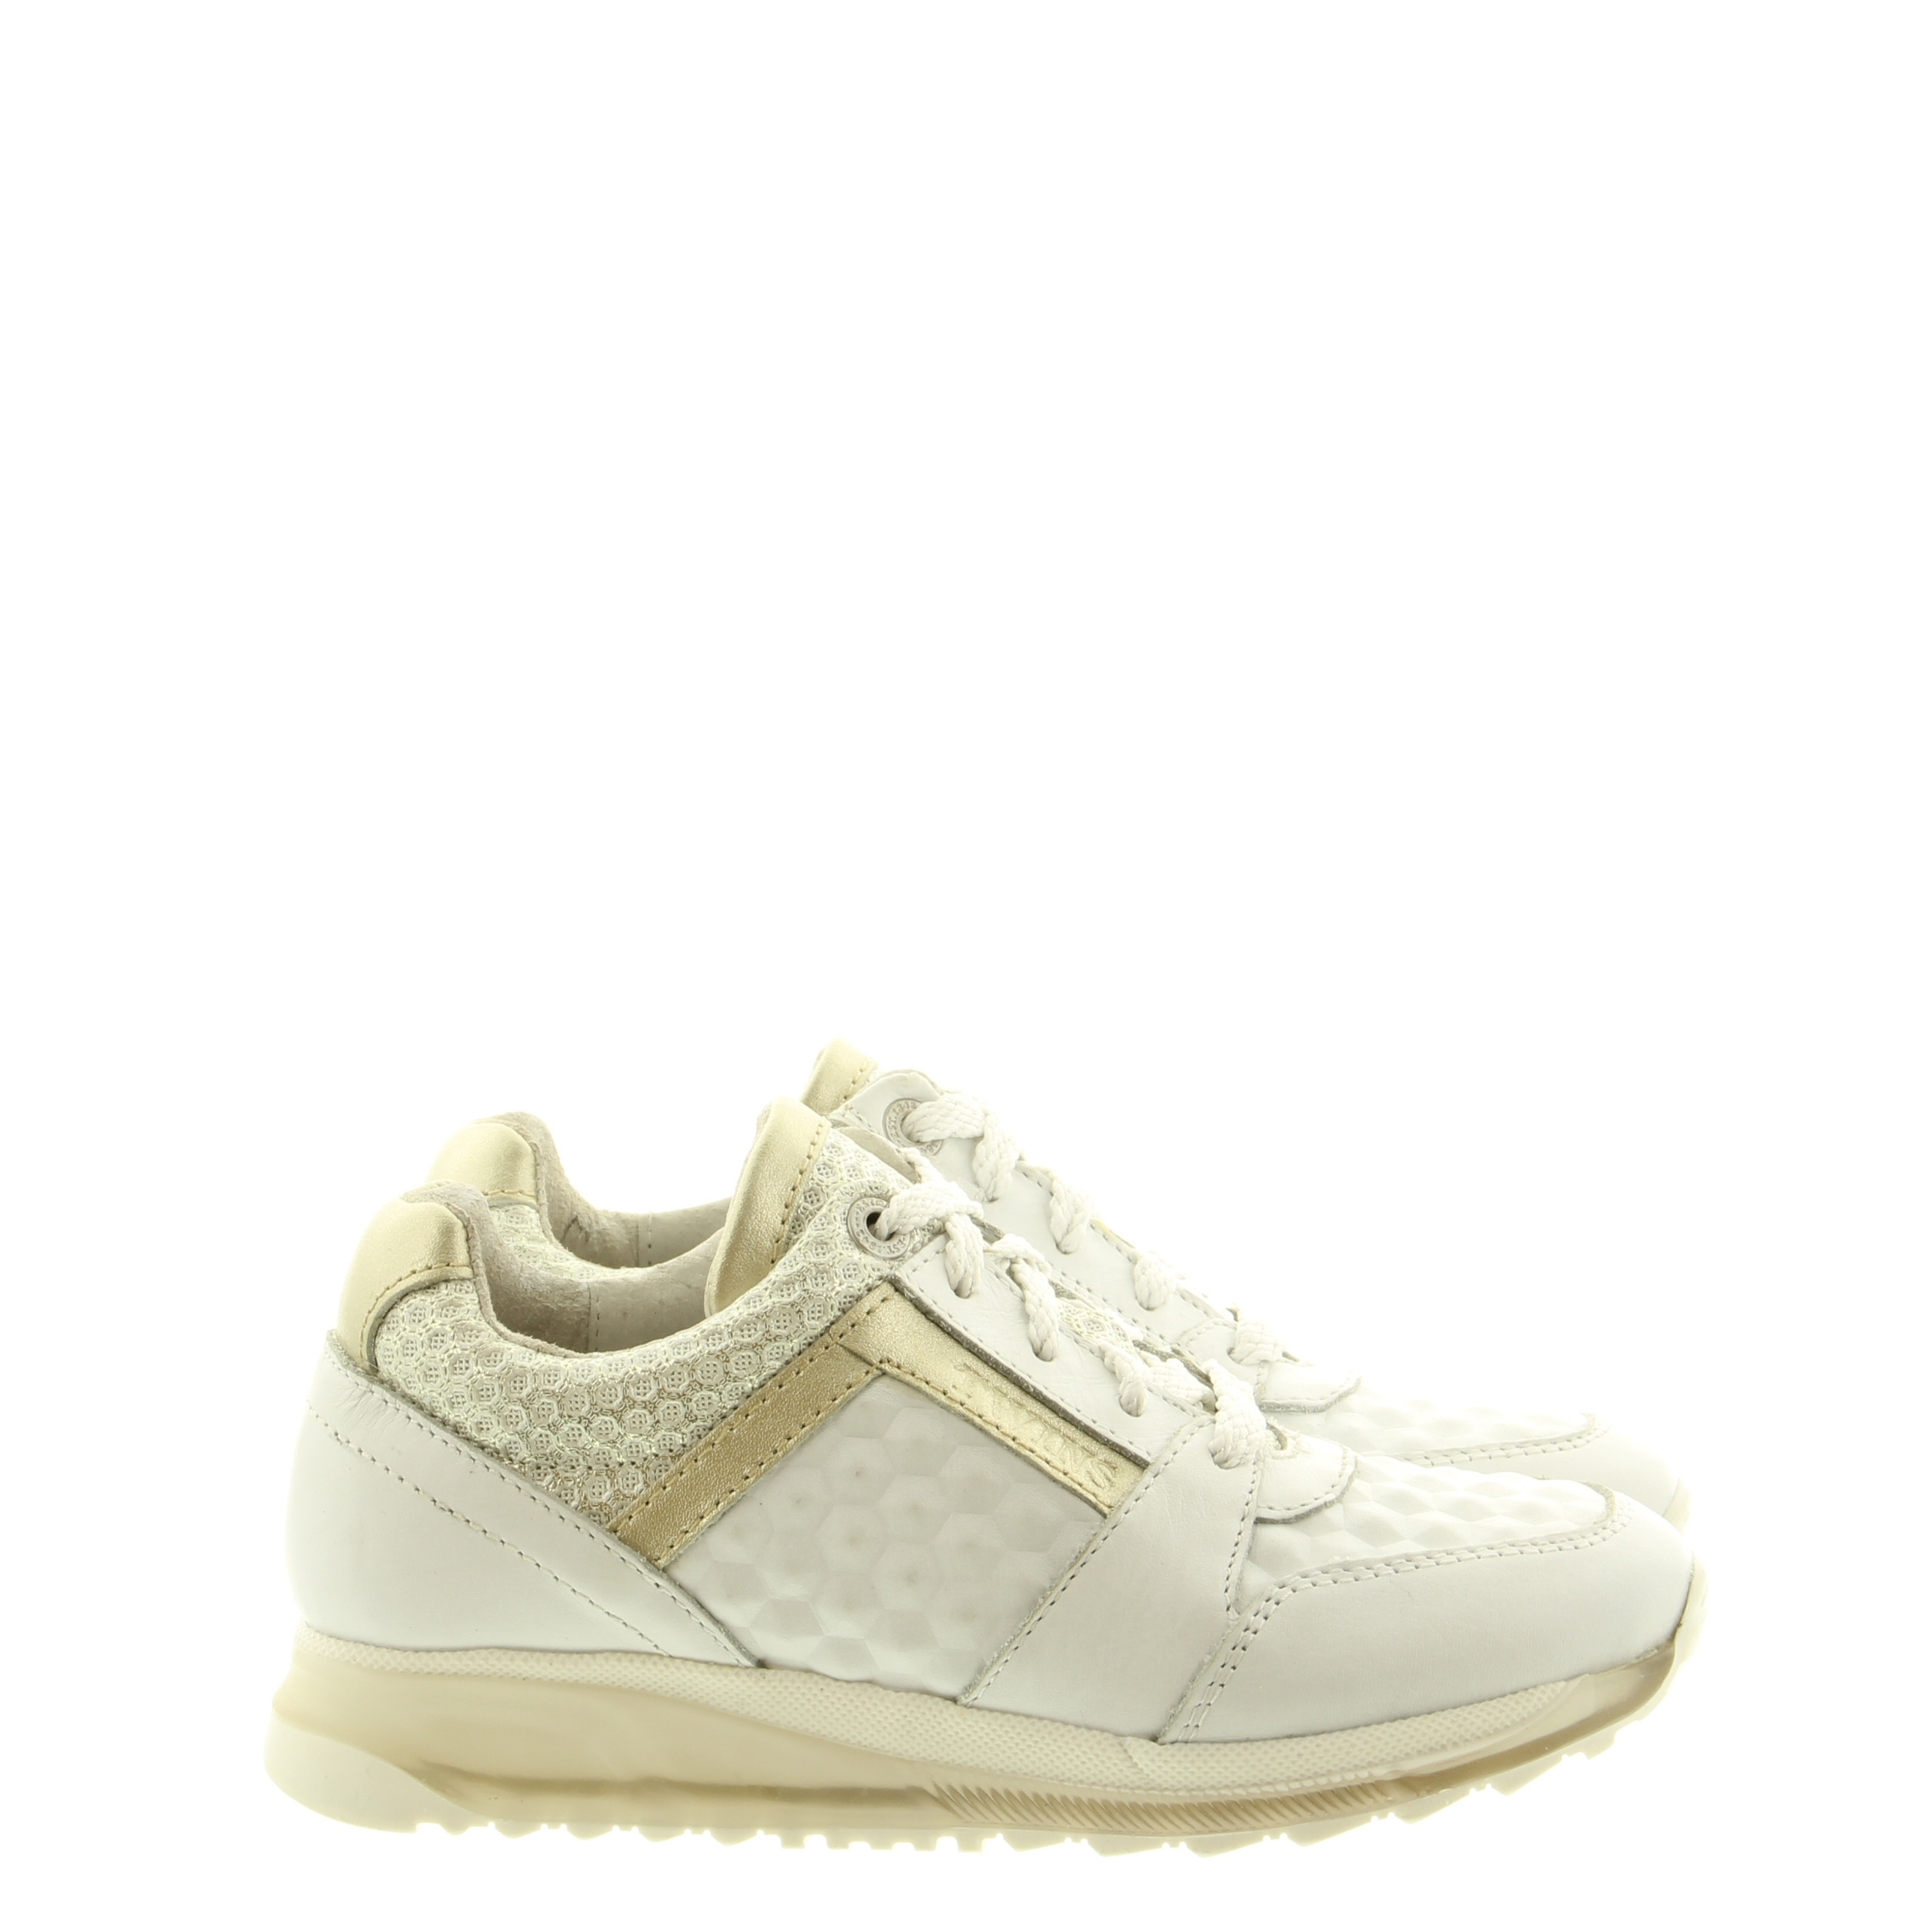 Twins Trackstyle 320157 500 White Champagne